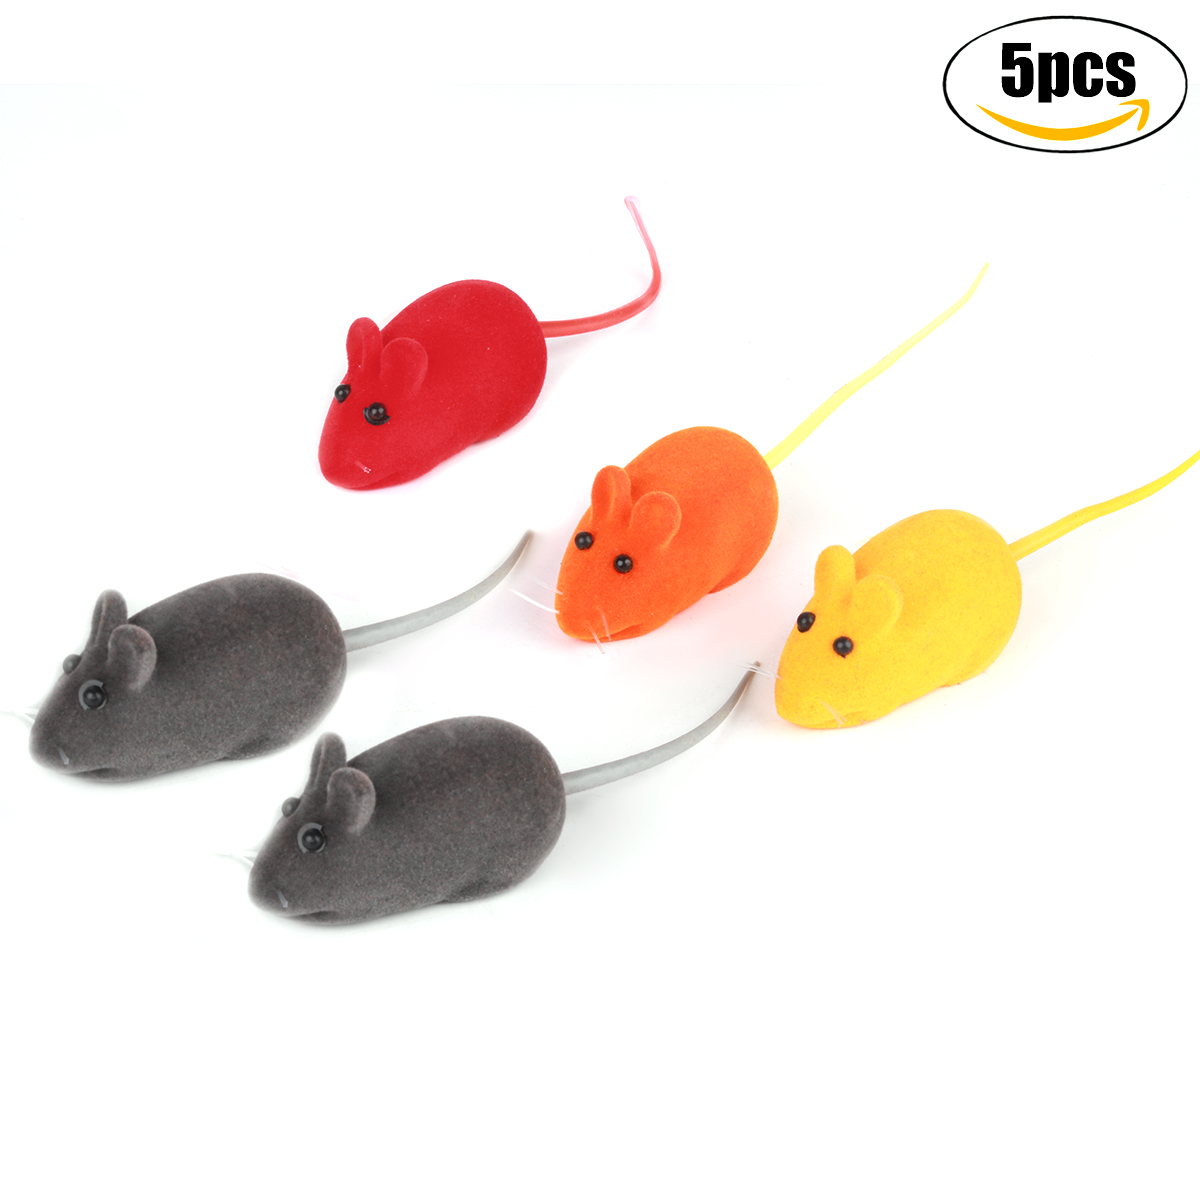 5Pcs Squeaky Toy set, Legendog Mice Funny Interactive Cat Toy Mice Mini Plush Mice Pet Plush Mice Pet Squeaky... by Legendog